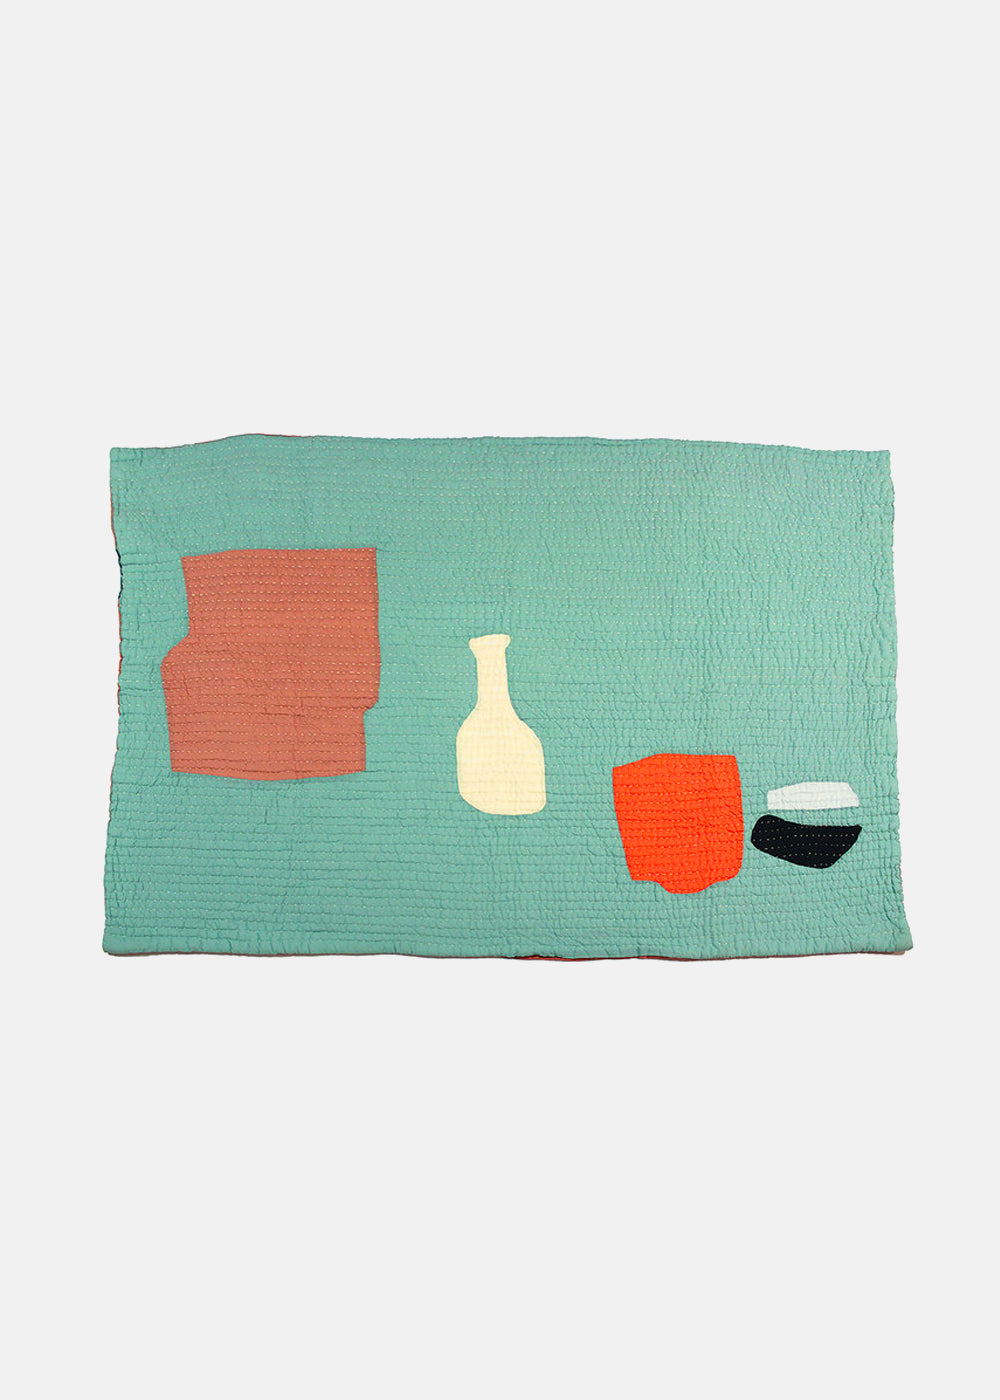 Cold Picnic Objects from Home Quilt — New Classics Studios